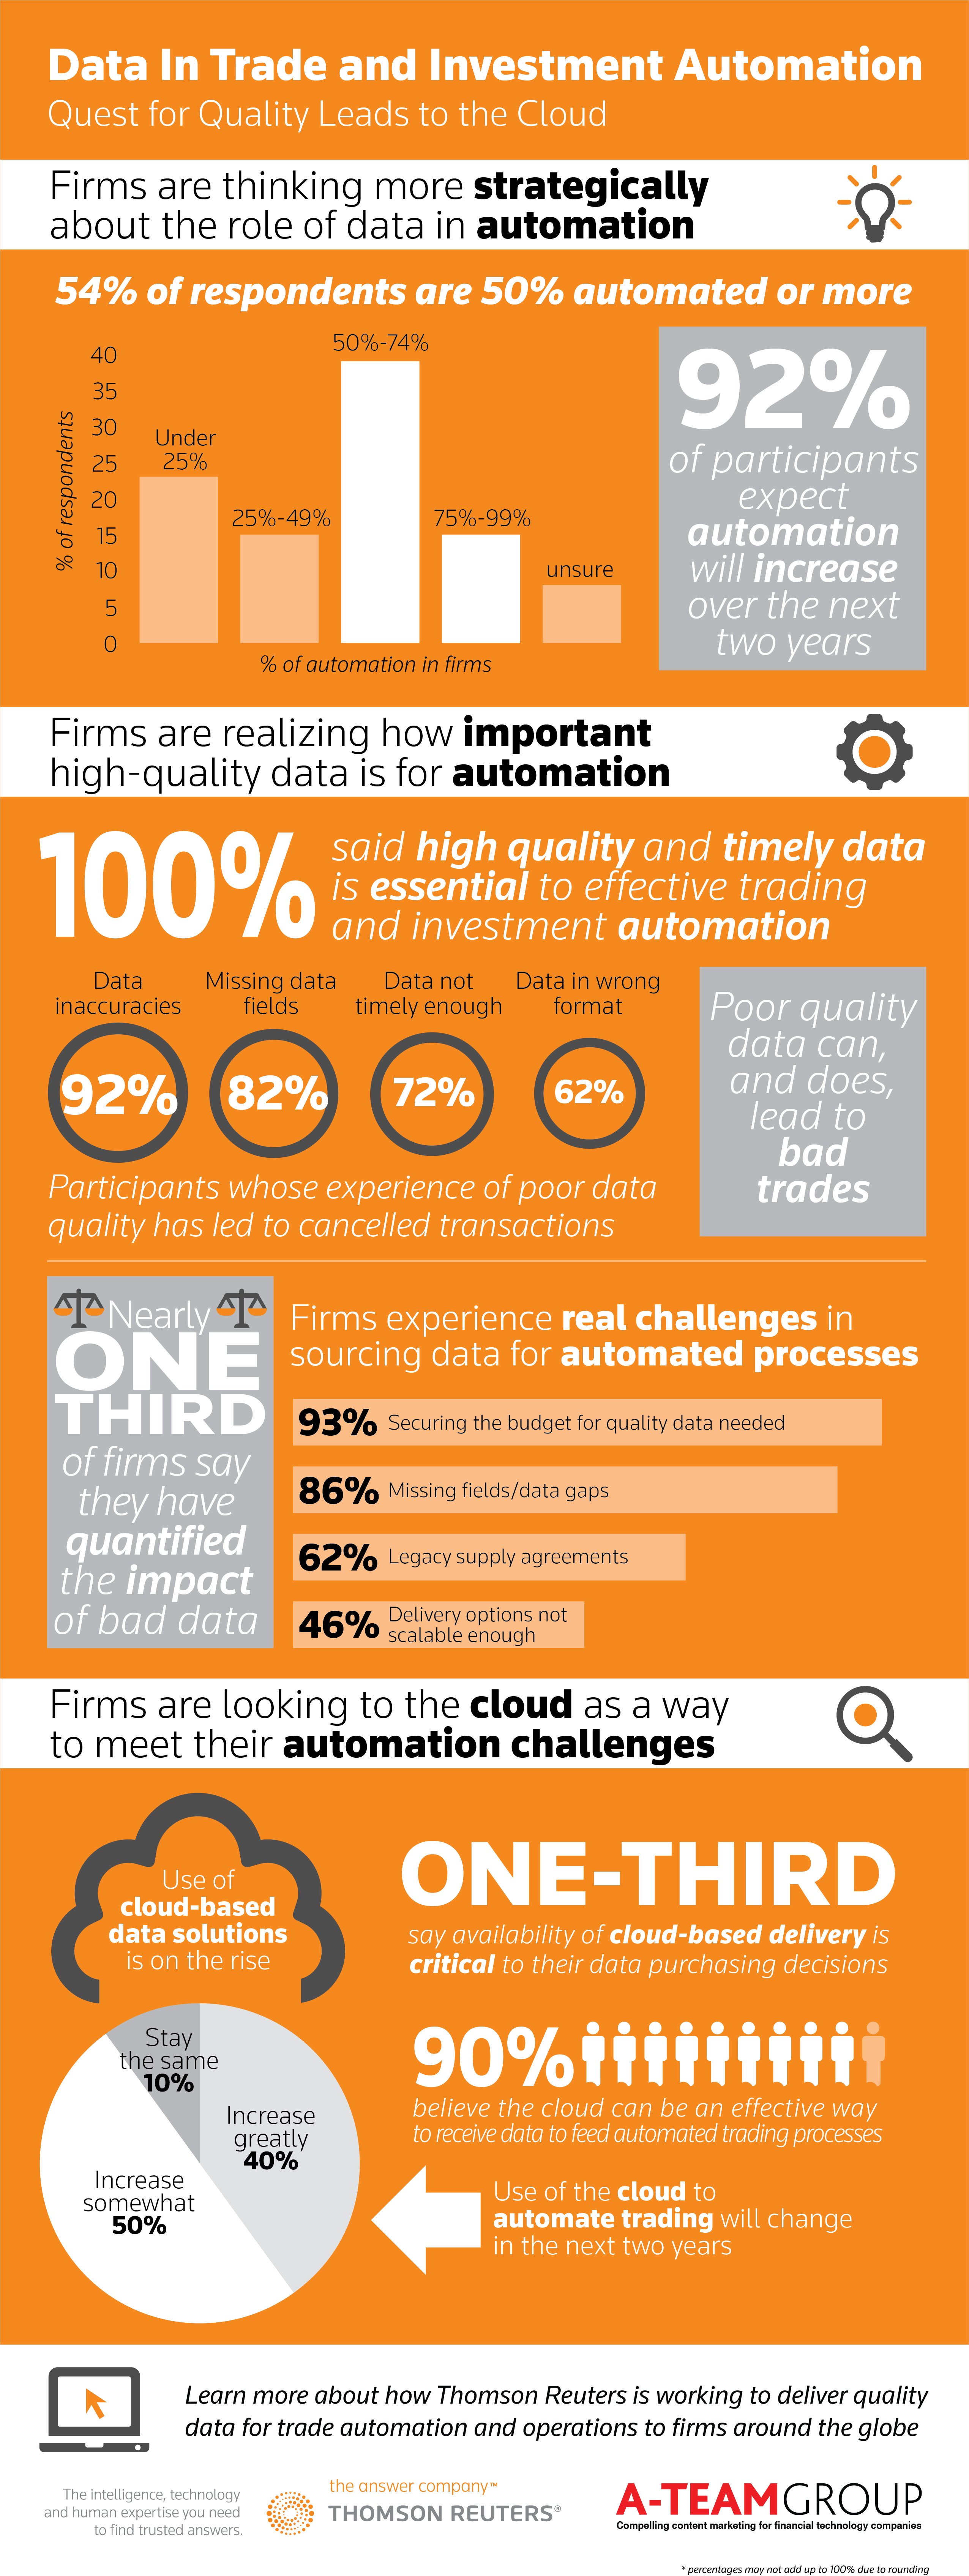 What do trading and data professionals think of automation? View the survey results.